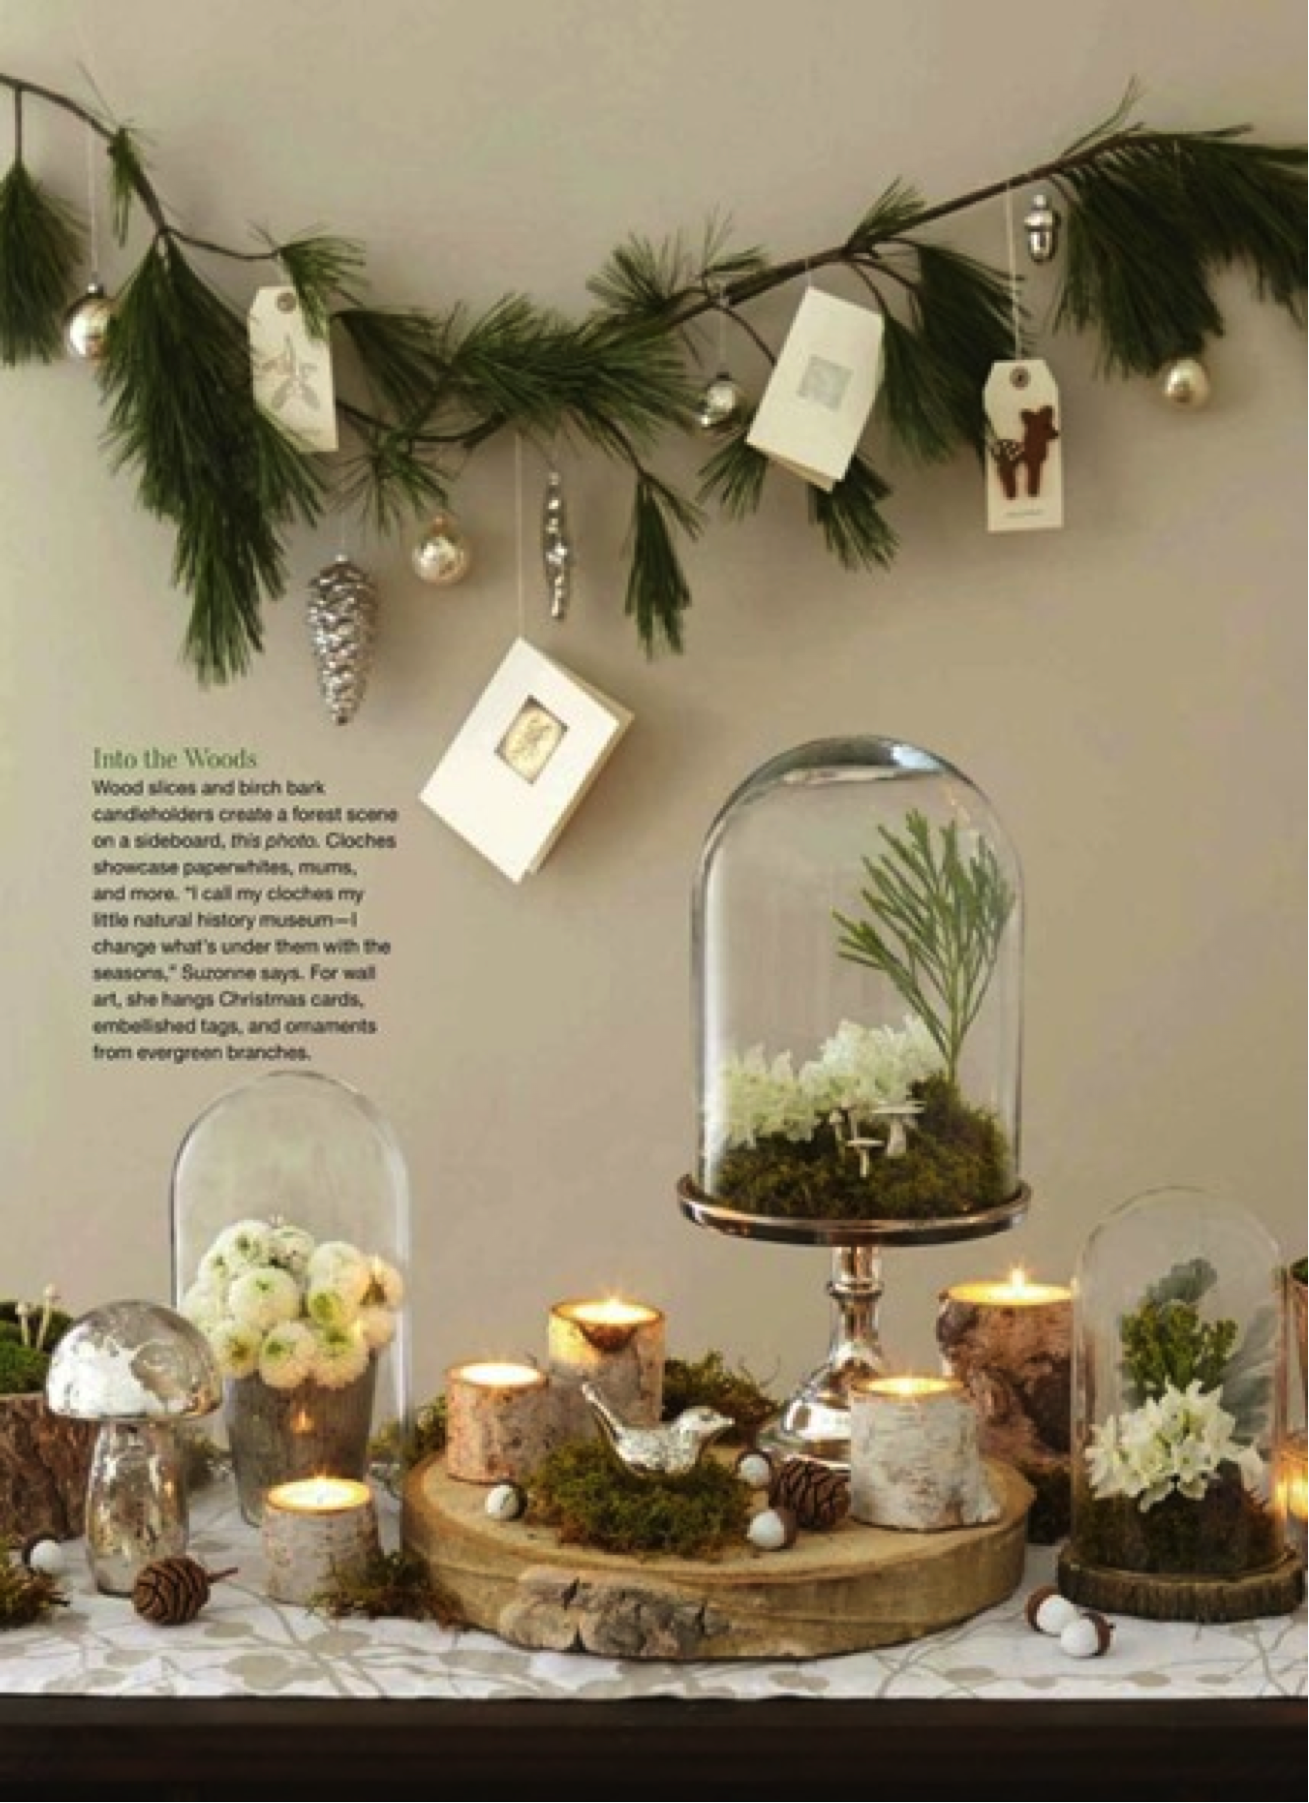 Holiday Decor Inspired by Nature Holiday decor christmas